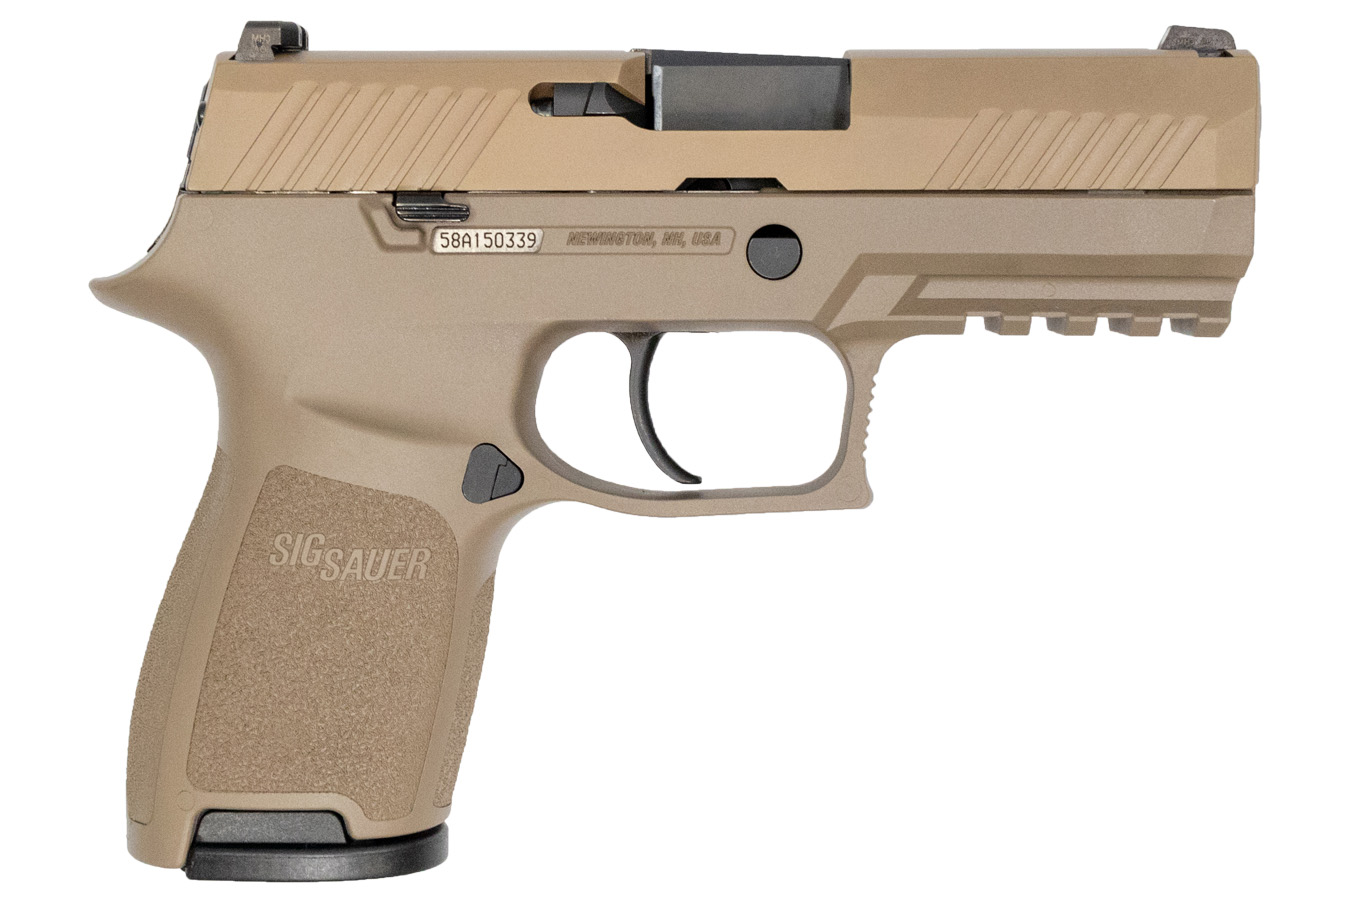 P320 Compact 9mm Flat Dark Earth Pistol with 3 Magazines (LE)